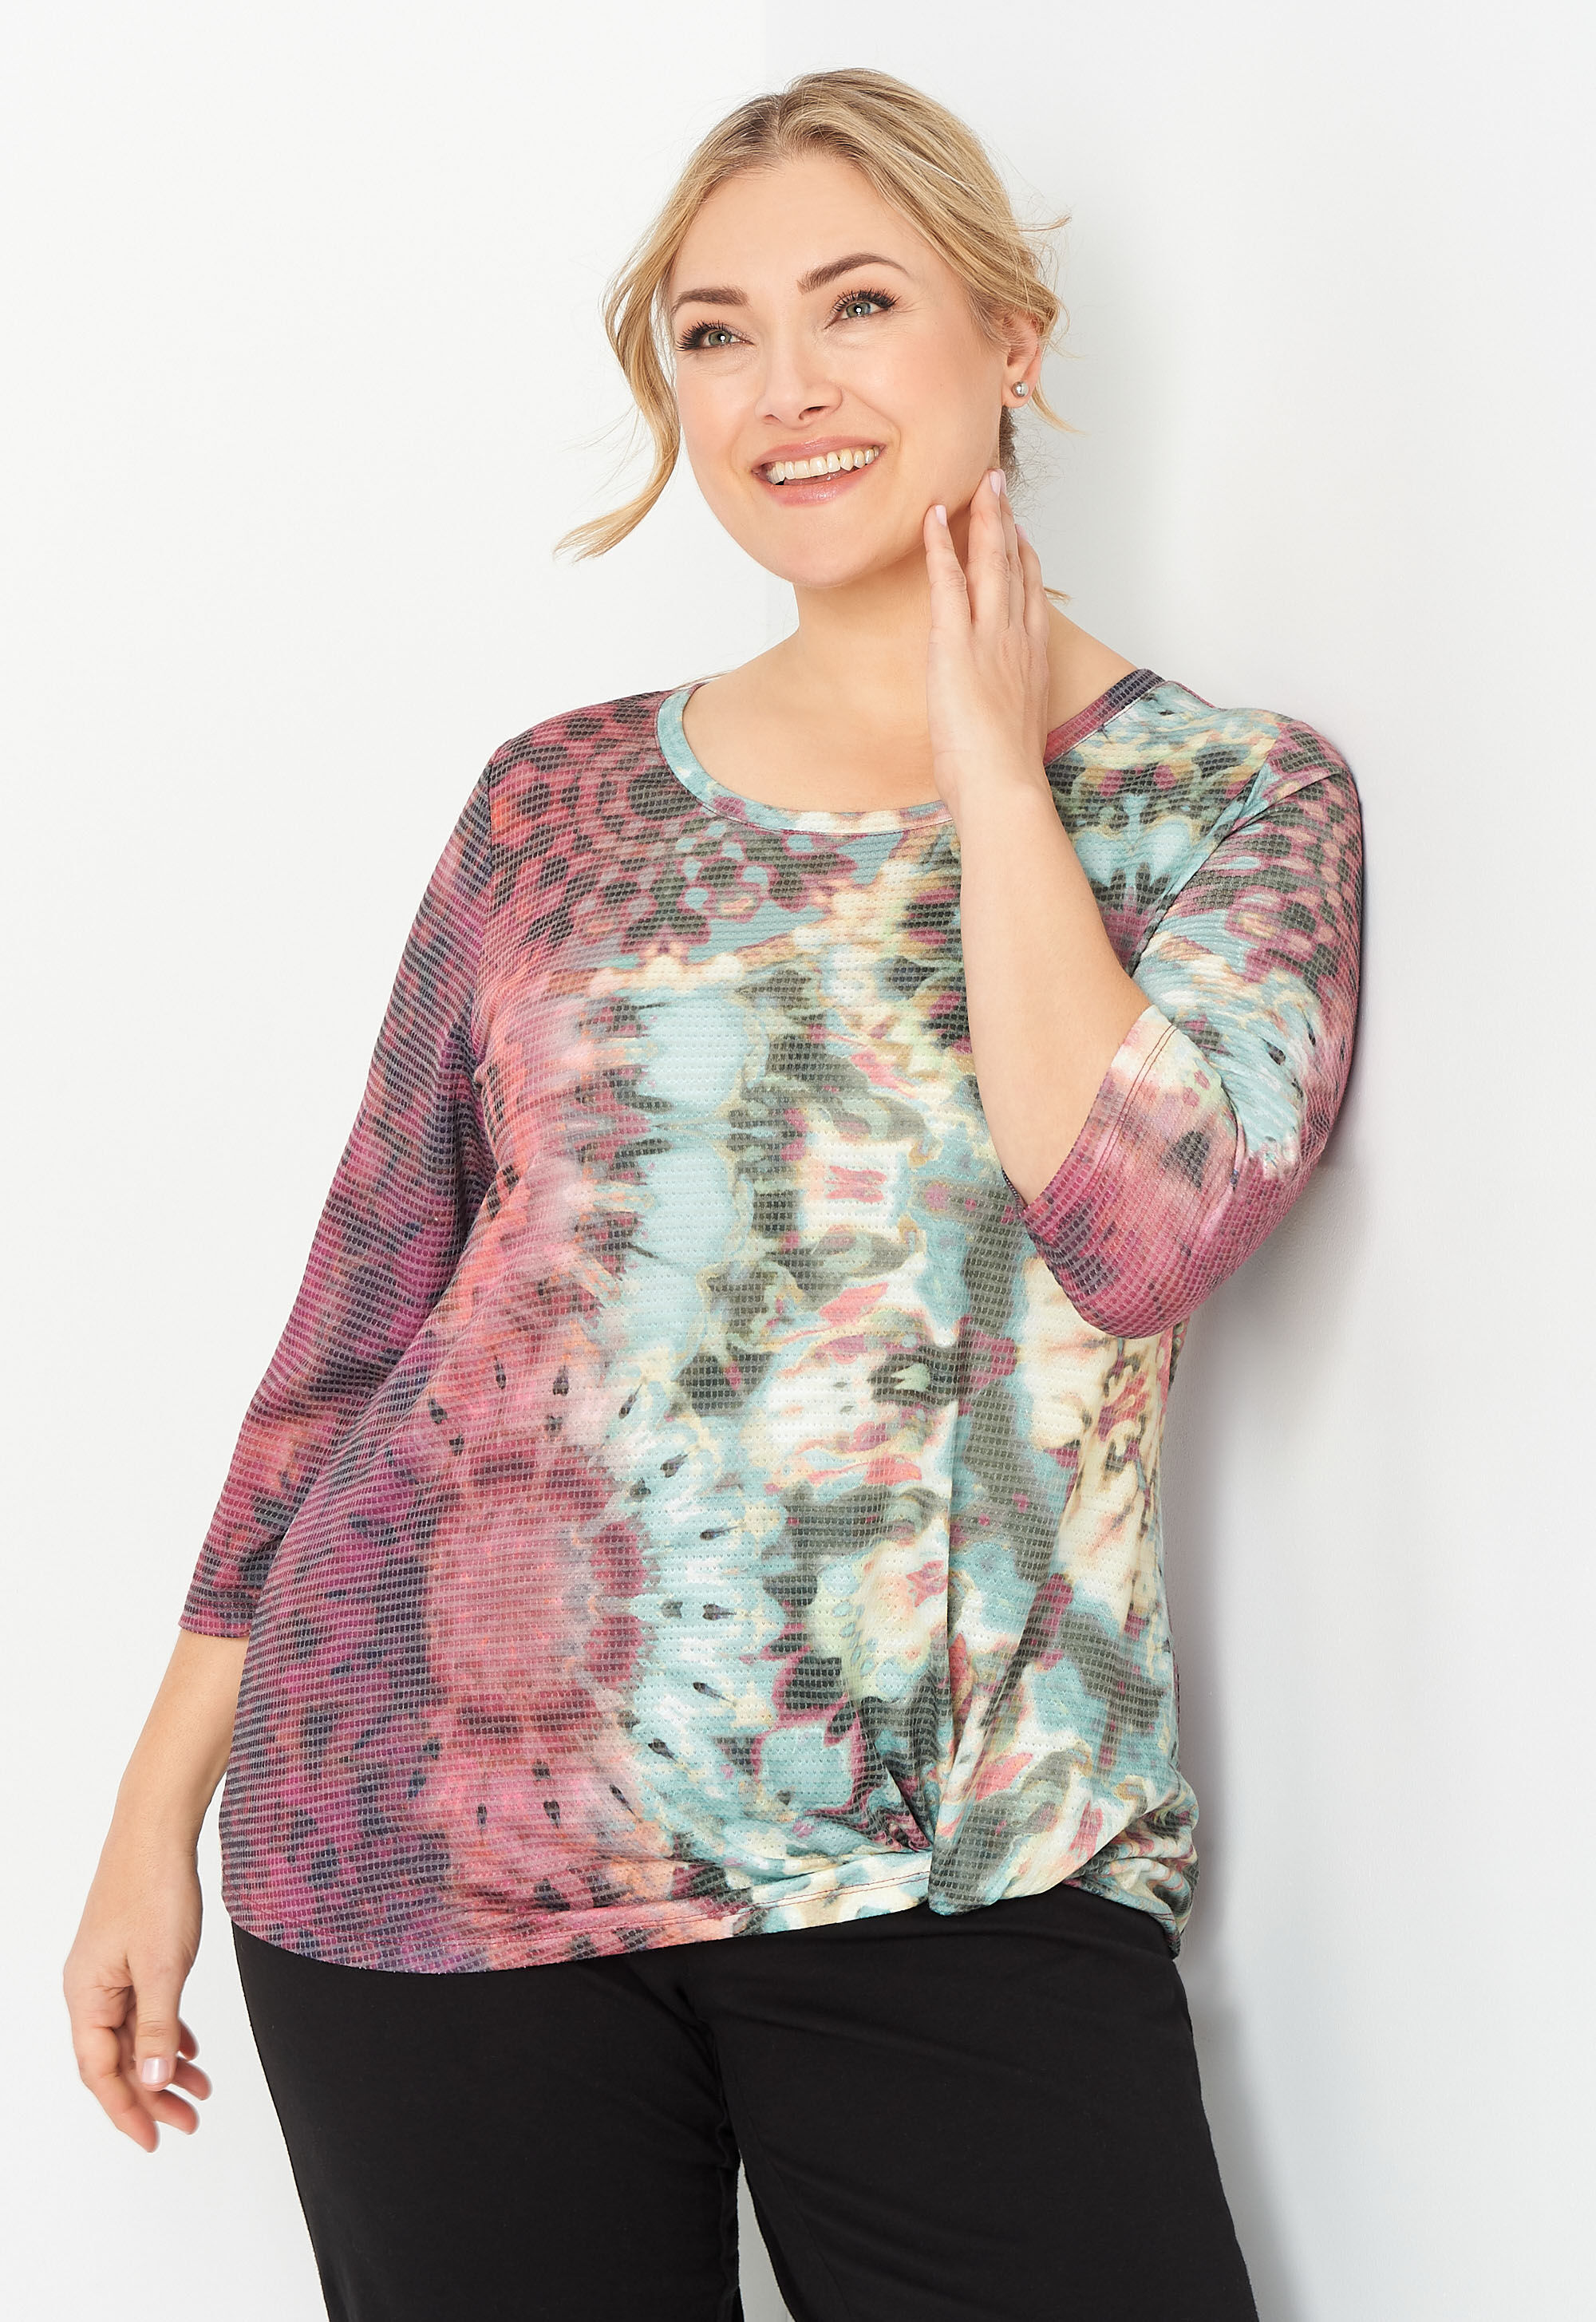 Relaxed Restyled Plus Size All Over Tie Dye Top 2